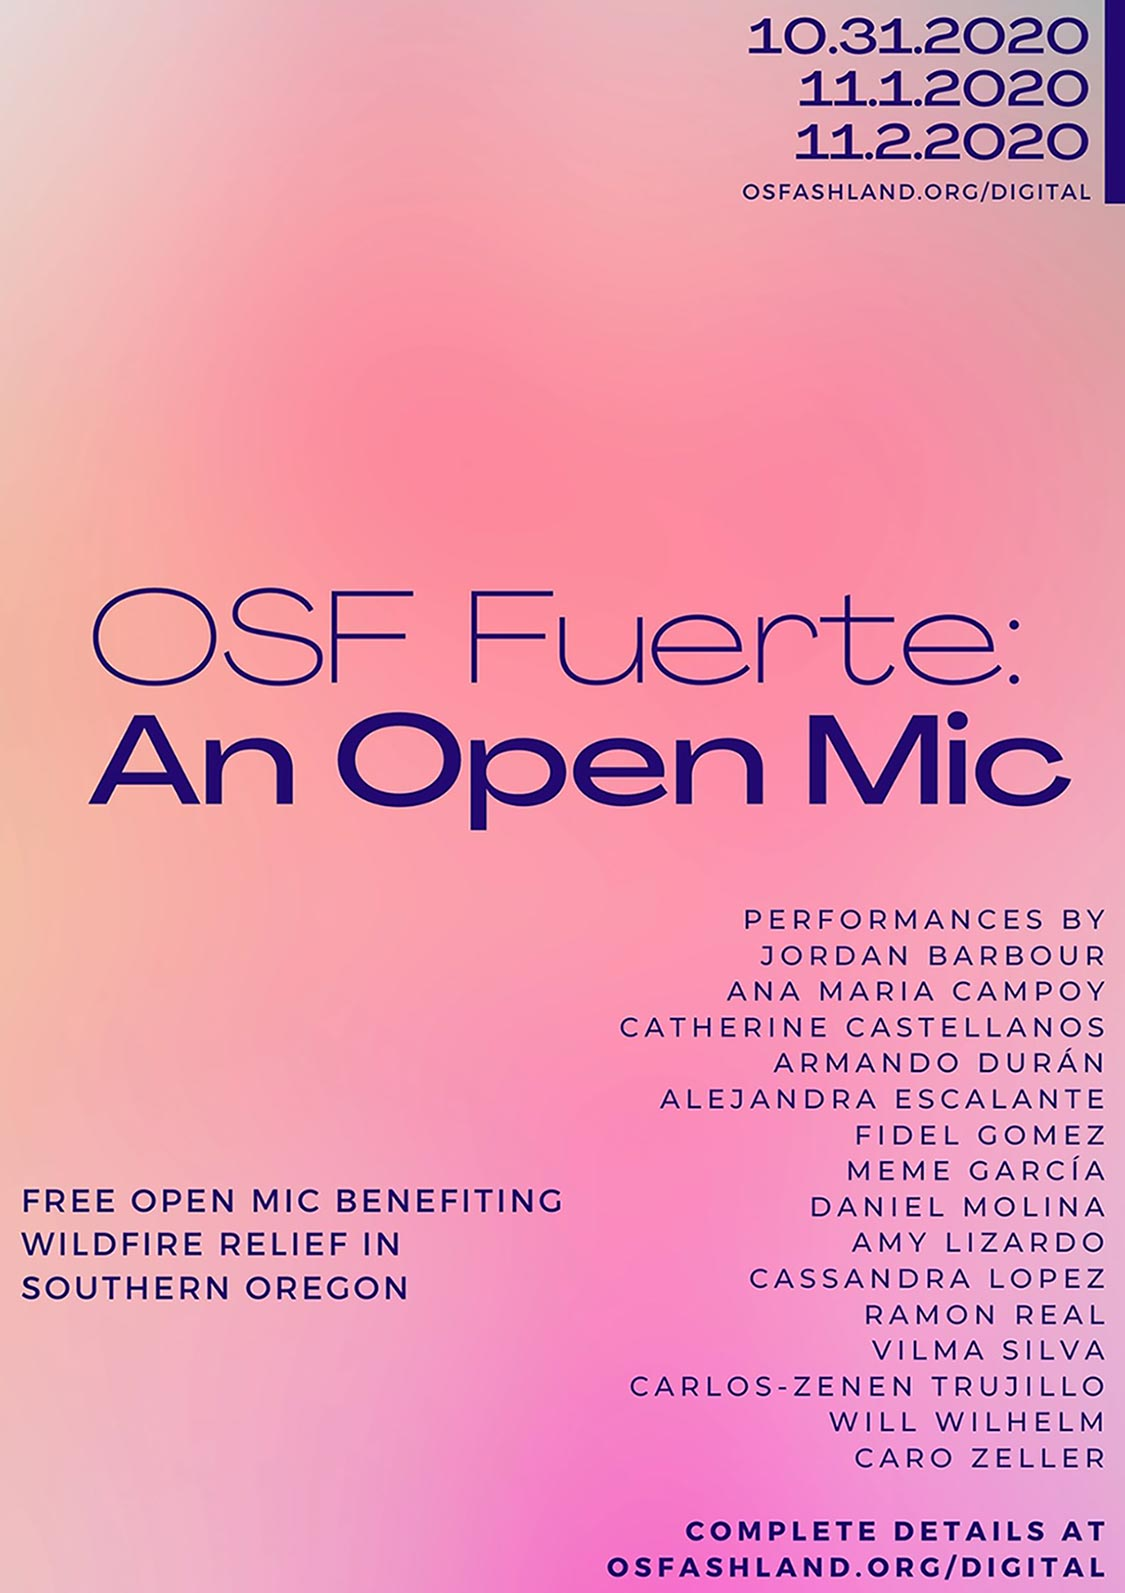 In the top right of the image has blue text on a peach background reading 10.31.2020 11.1.2020 11.2.2020 osfashland.org/digital. The middle of the image has blue text on a peach background reading OSF Fuerte: An Open Mic. The bottom of the image has two columns of blue text on a peach background. The left column says Free Open Mic Benefiting Wildfire Relief In Southern Oregon. The Right column says Performances by Jordan Barbour Ana Maria Campoy Catherine Castellanos Armando Duran Alejandra Escalante Fidel Gomez Meme Garcia Daniel Molina Amy Lizardo Cassandra Lopez Ramon Real Vilma Silva Carlos-Zenen Trujillo Will Wilhelm Caro Zeller complete details at osfashland.org/digital